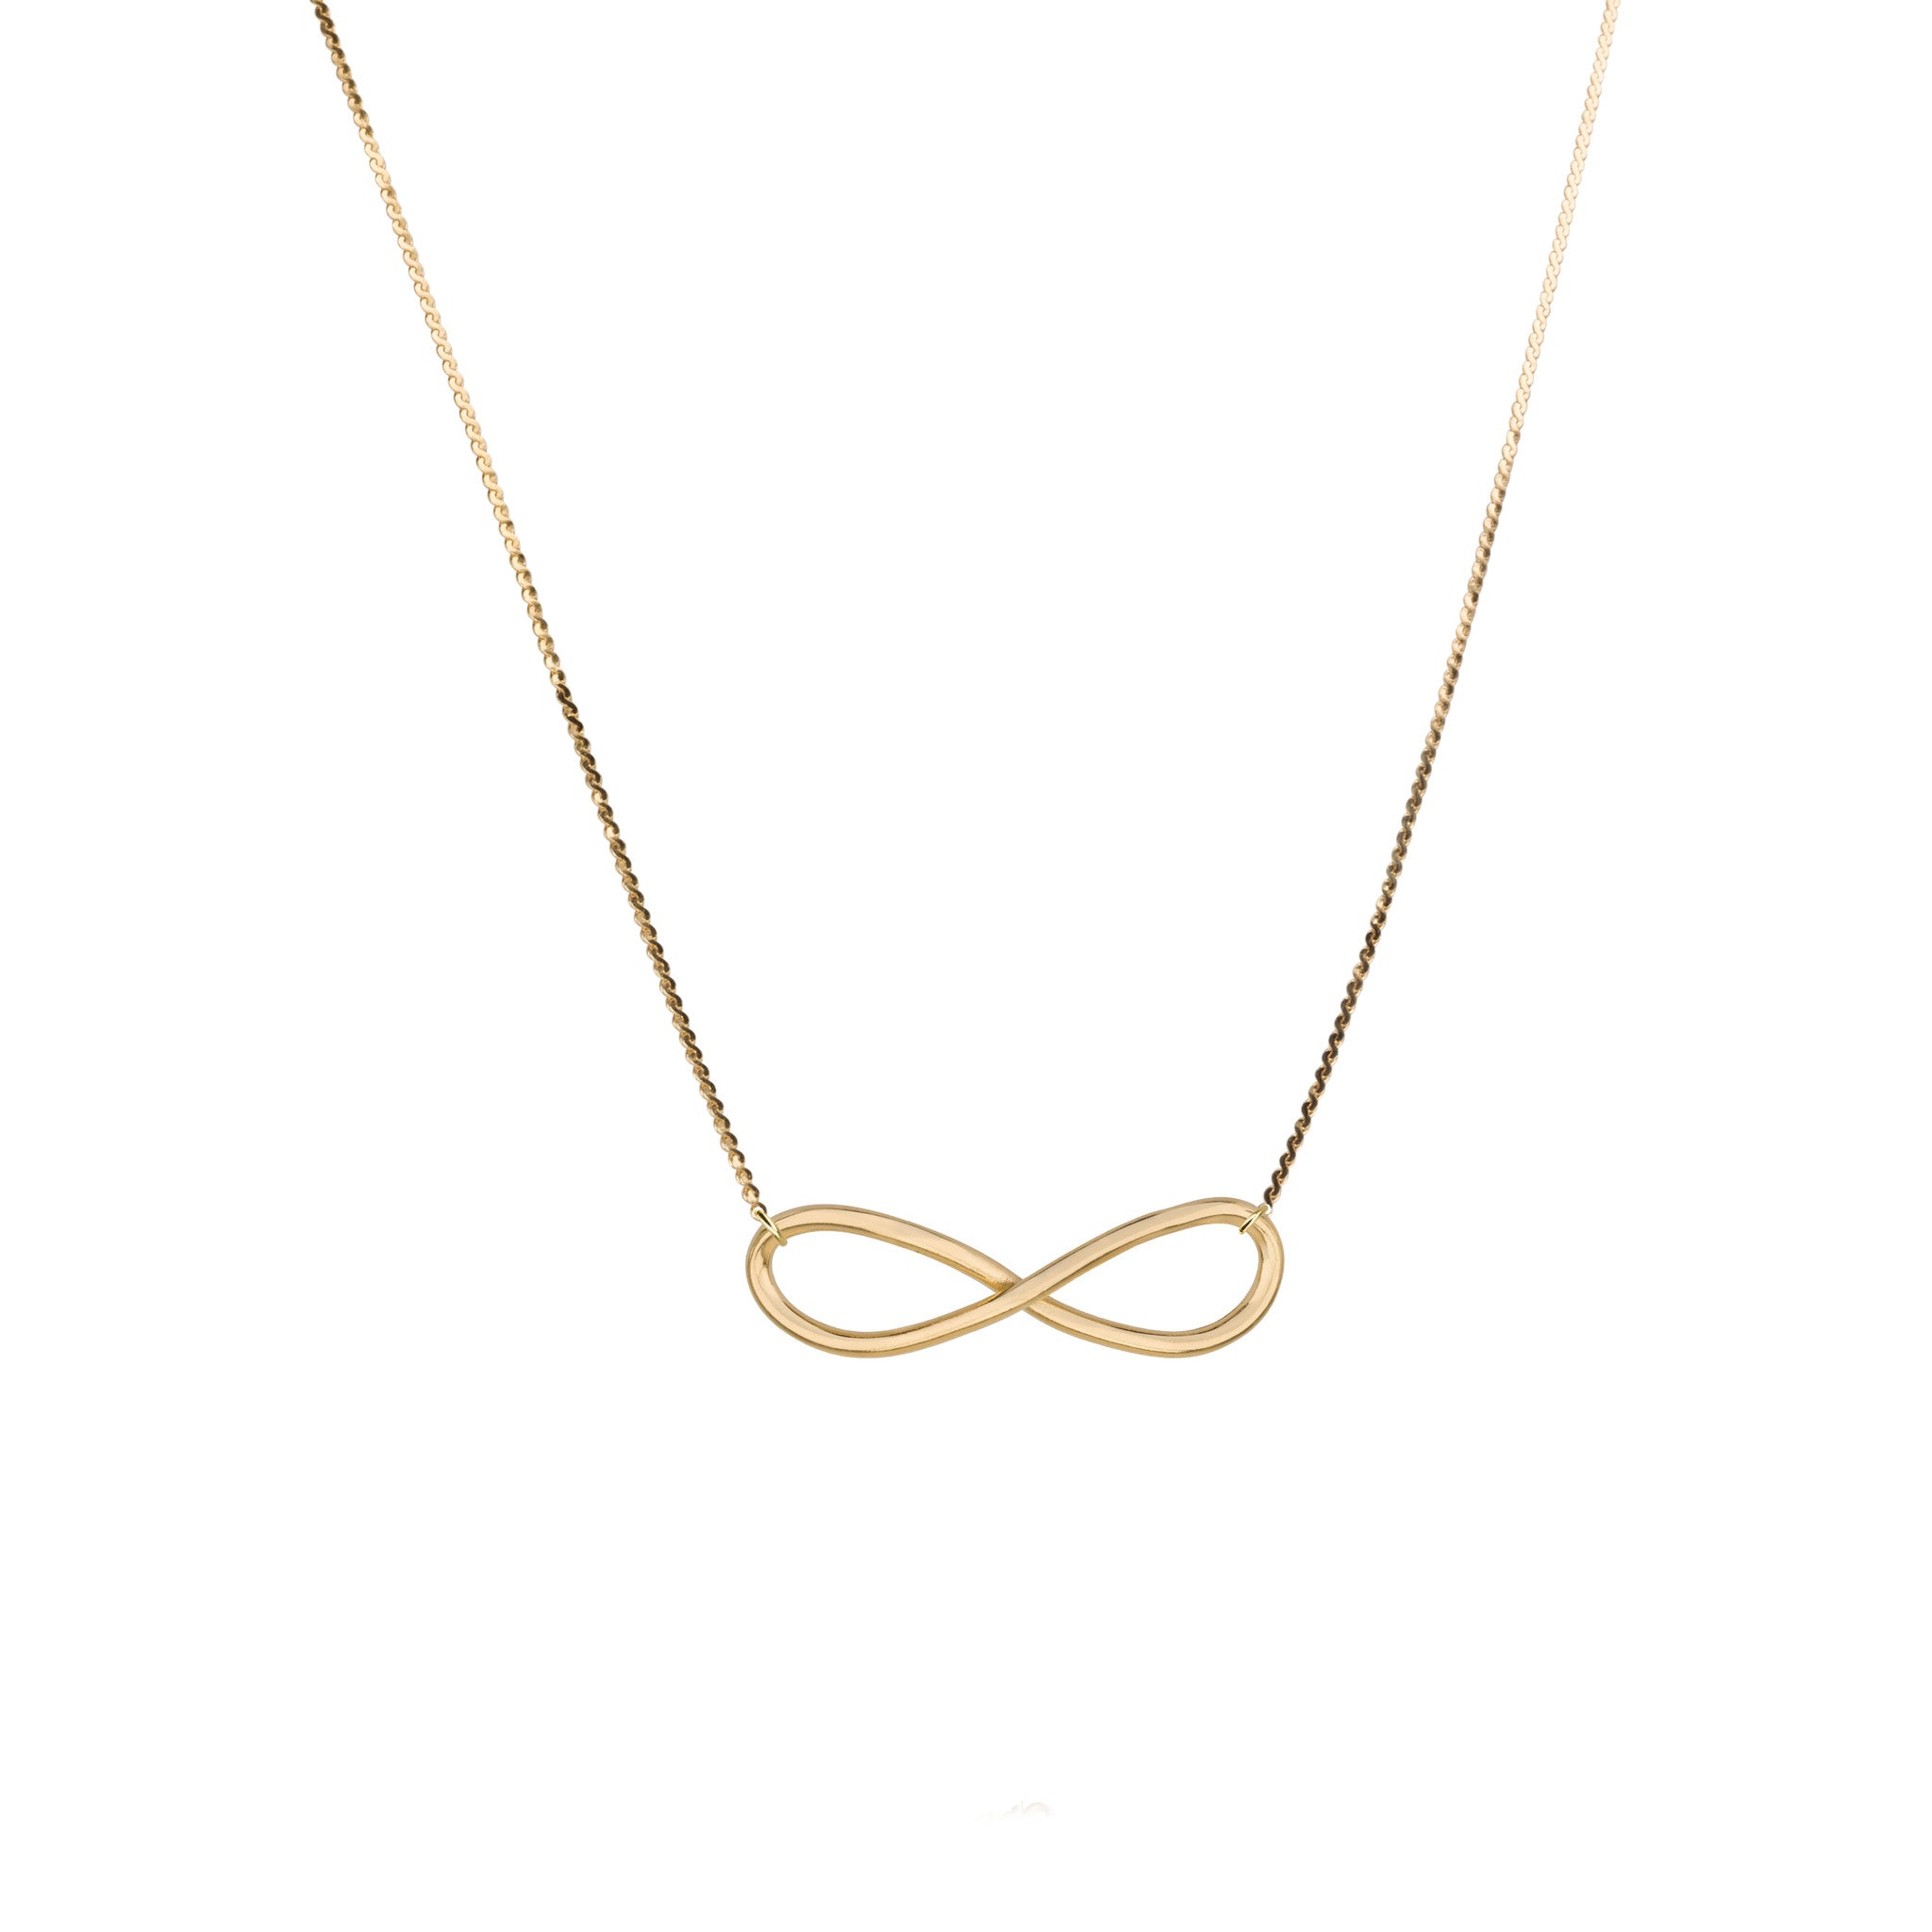 stones necklace nana pendant gold or in infinity adjustable quot silver with solid sj box to chain s utse mother sterling